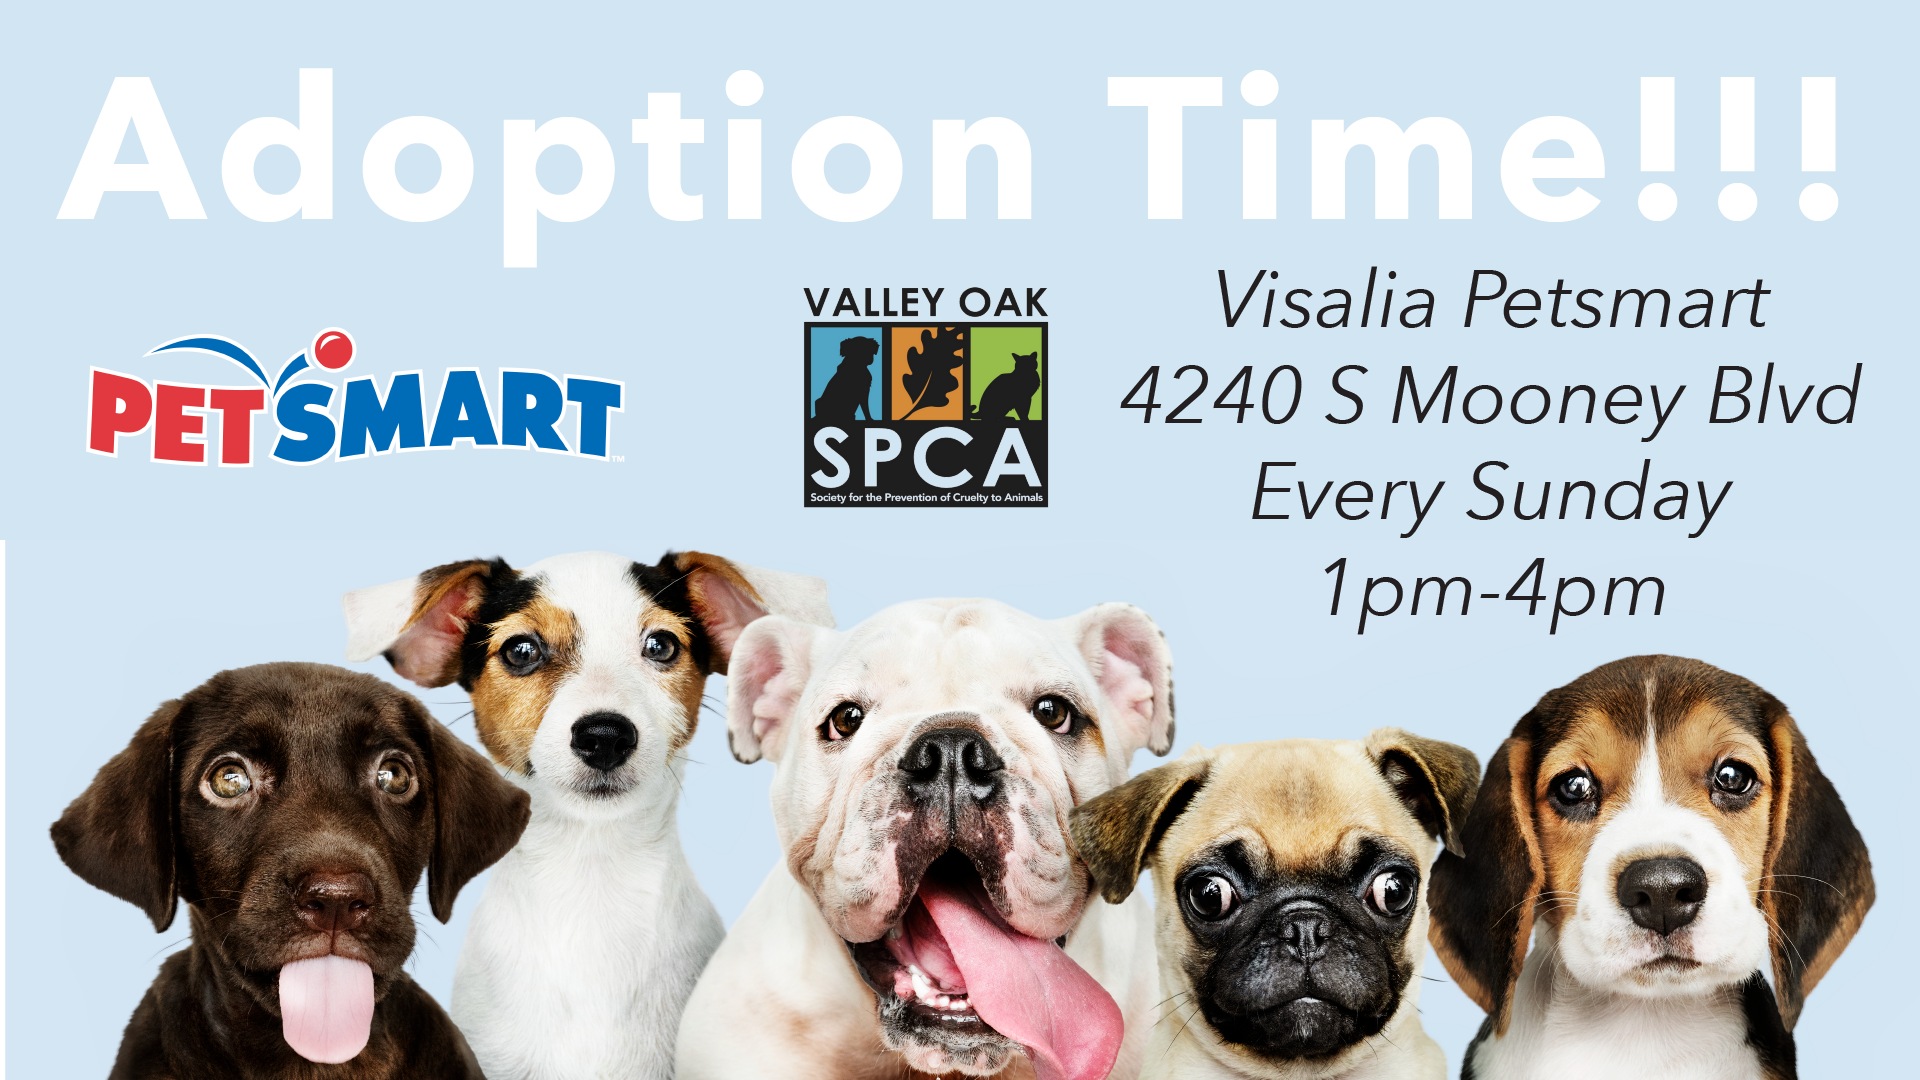 Visalia Petsmart Adoption.png